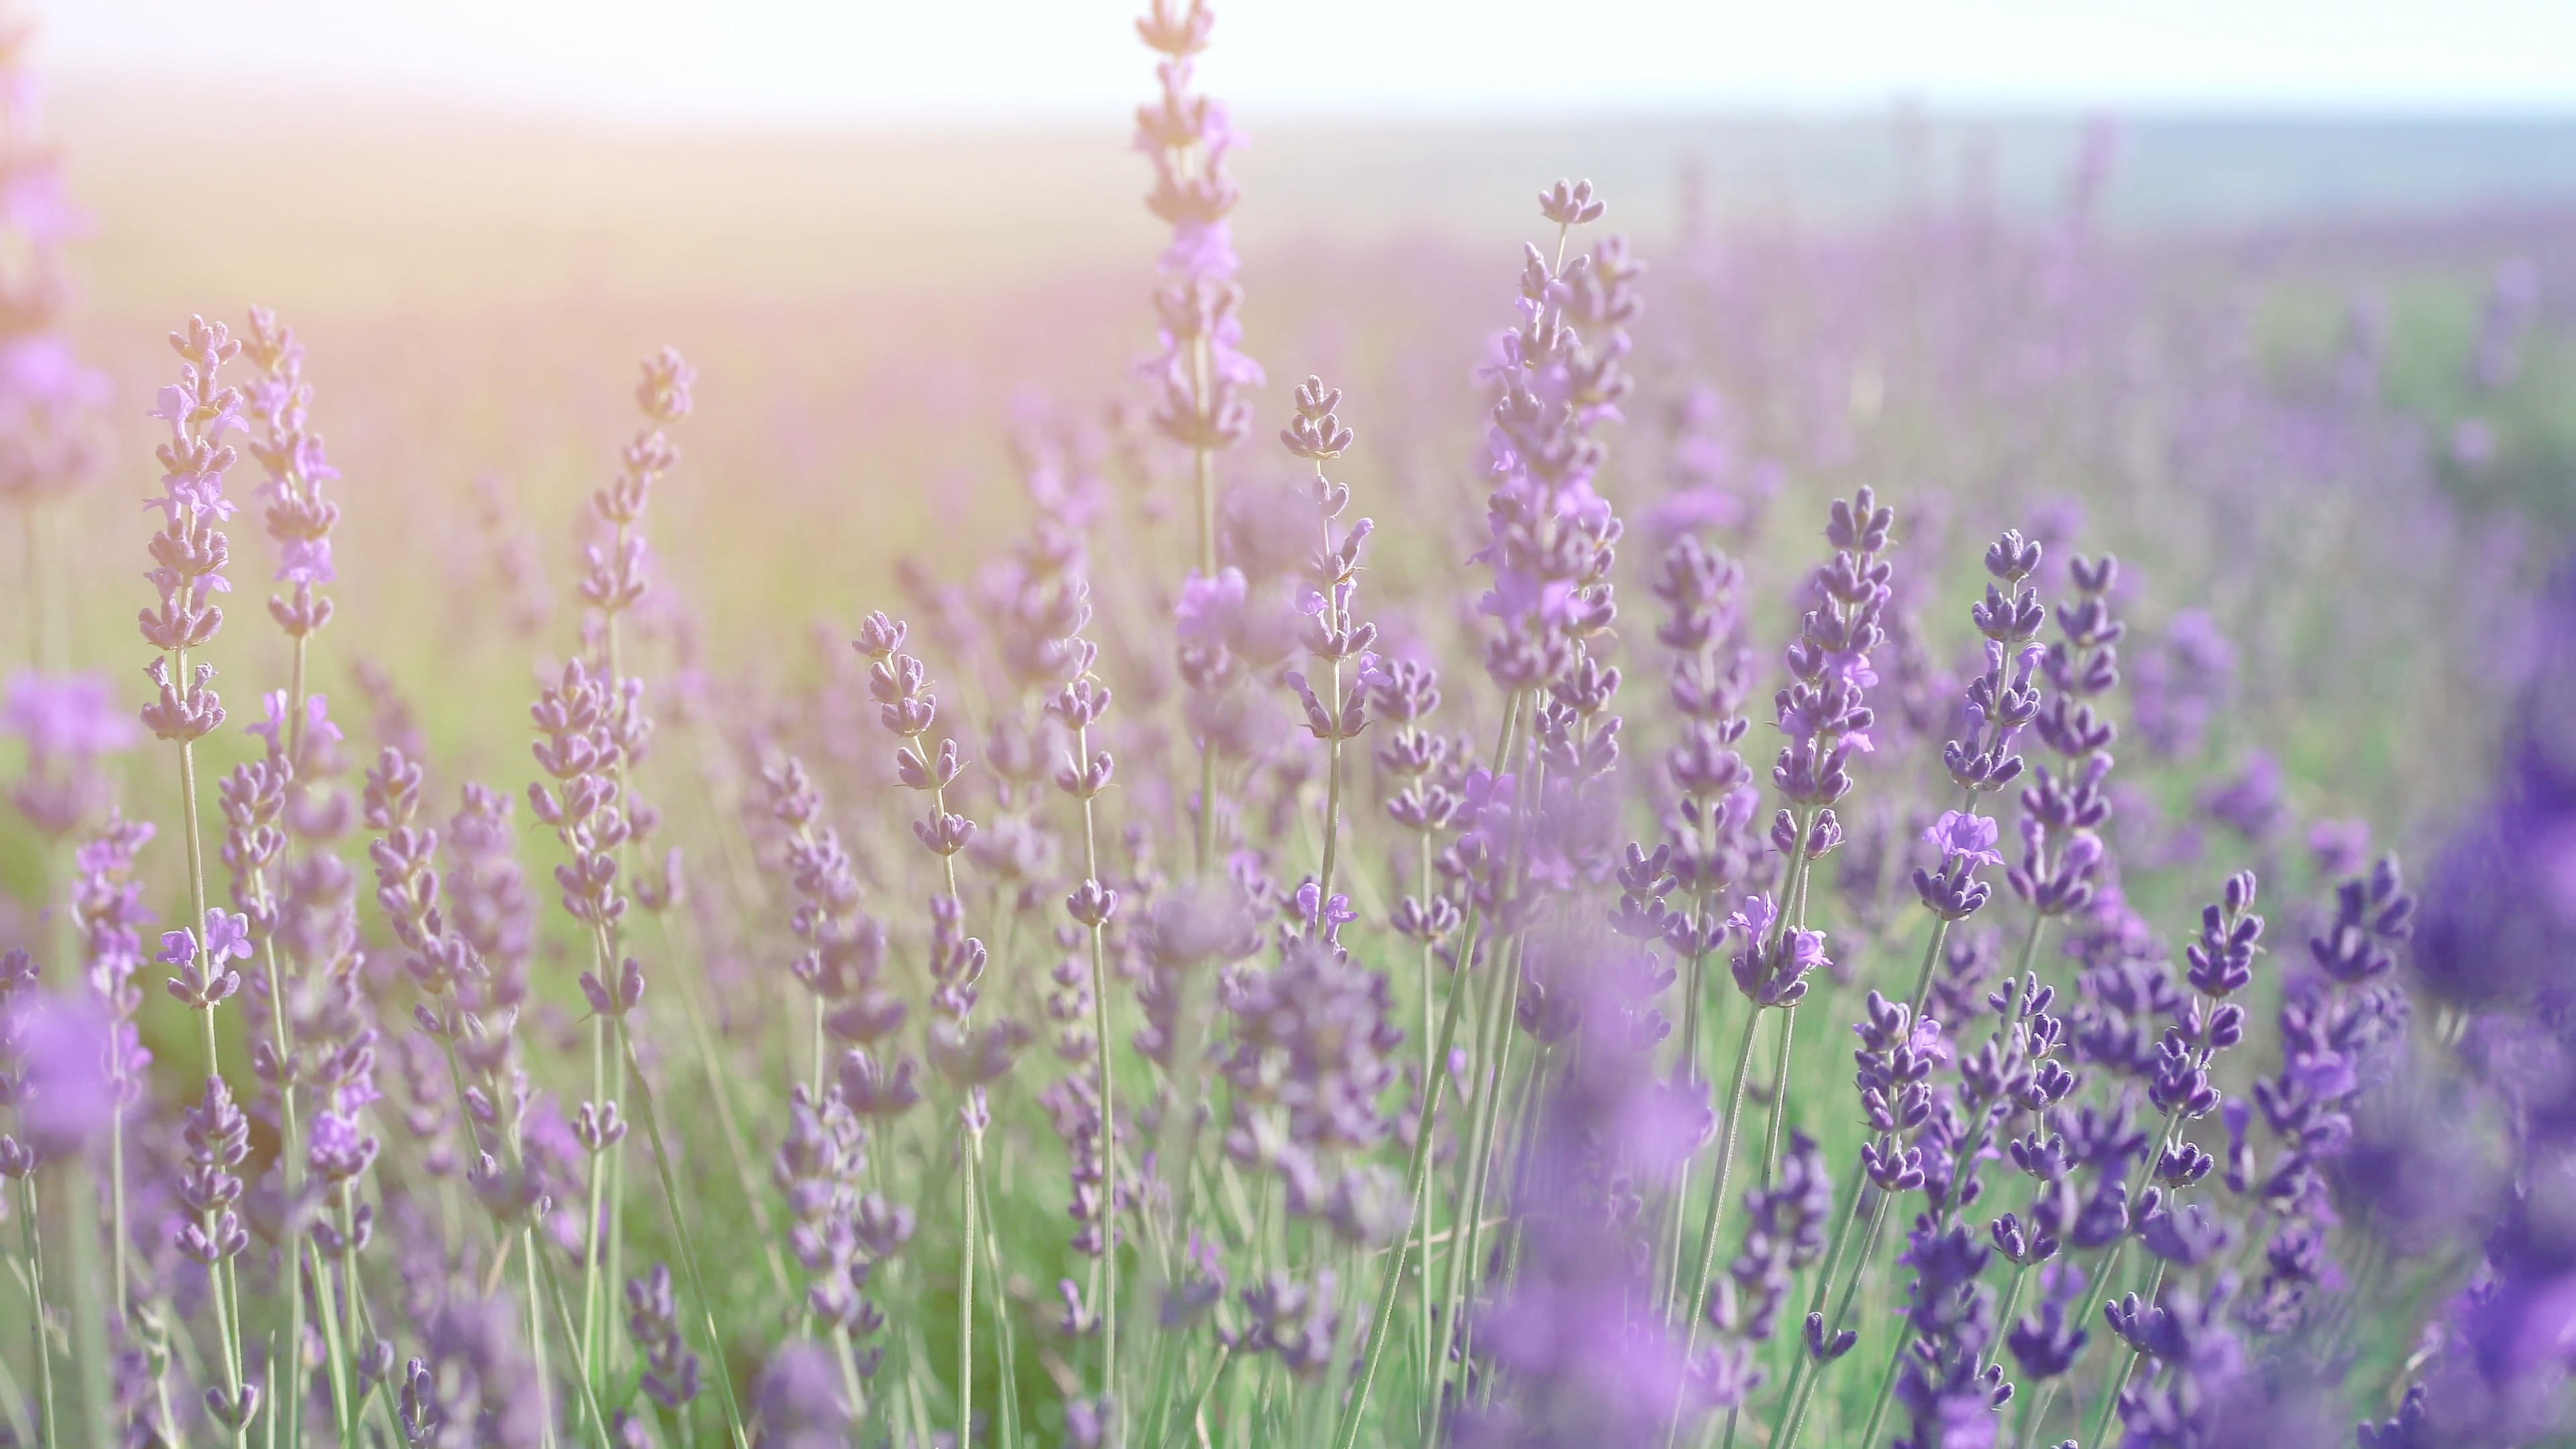 3840x2160 Lavender field in Crimea. Lavandula flowers swaying